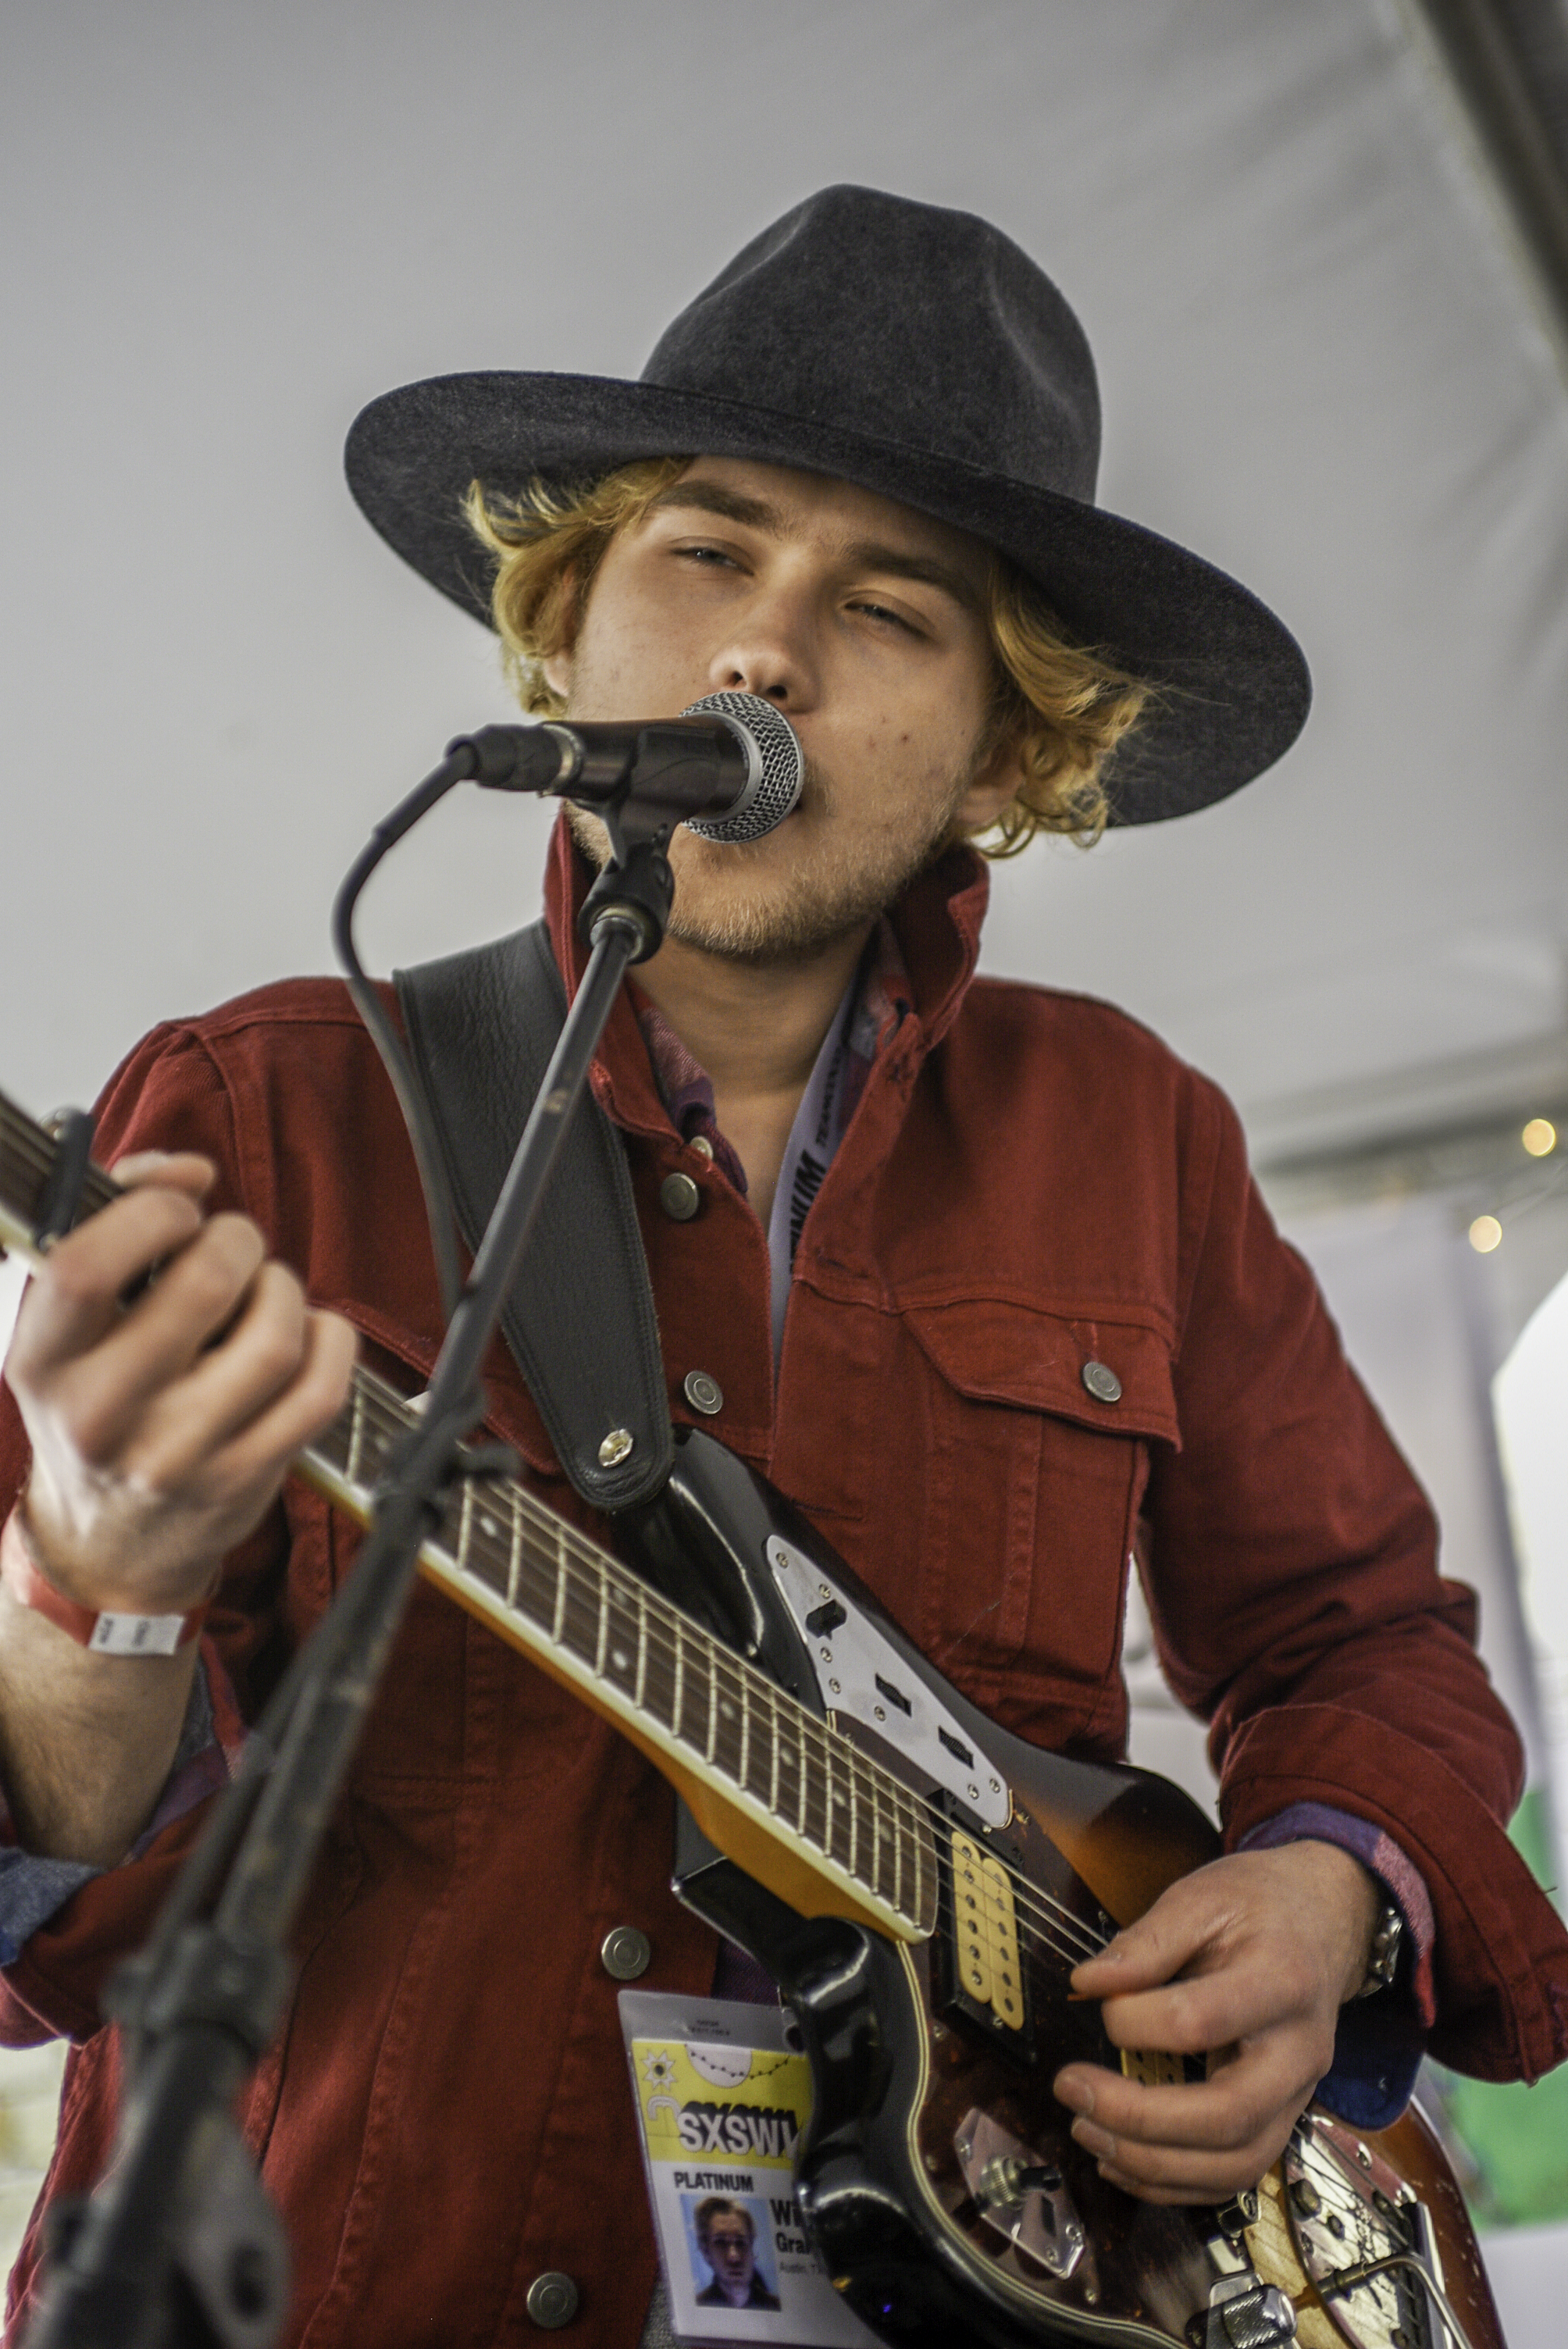 """Local singer songwriter William Harries Graham played 6 shows at SXSW. Graham has recently released his album """"Jakes."""""""